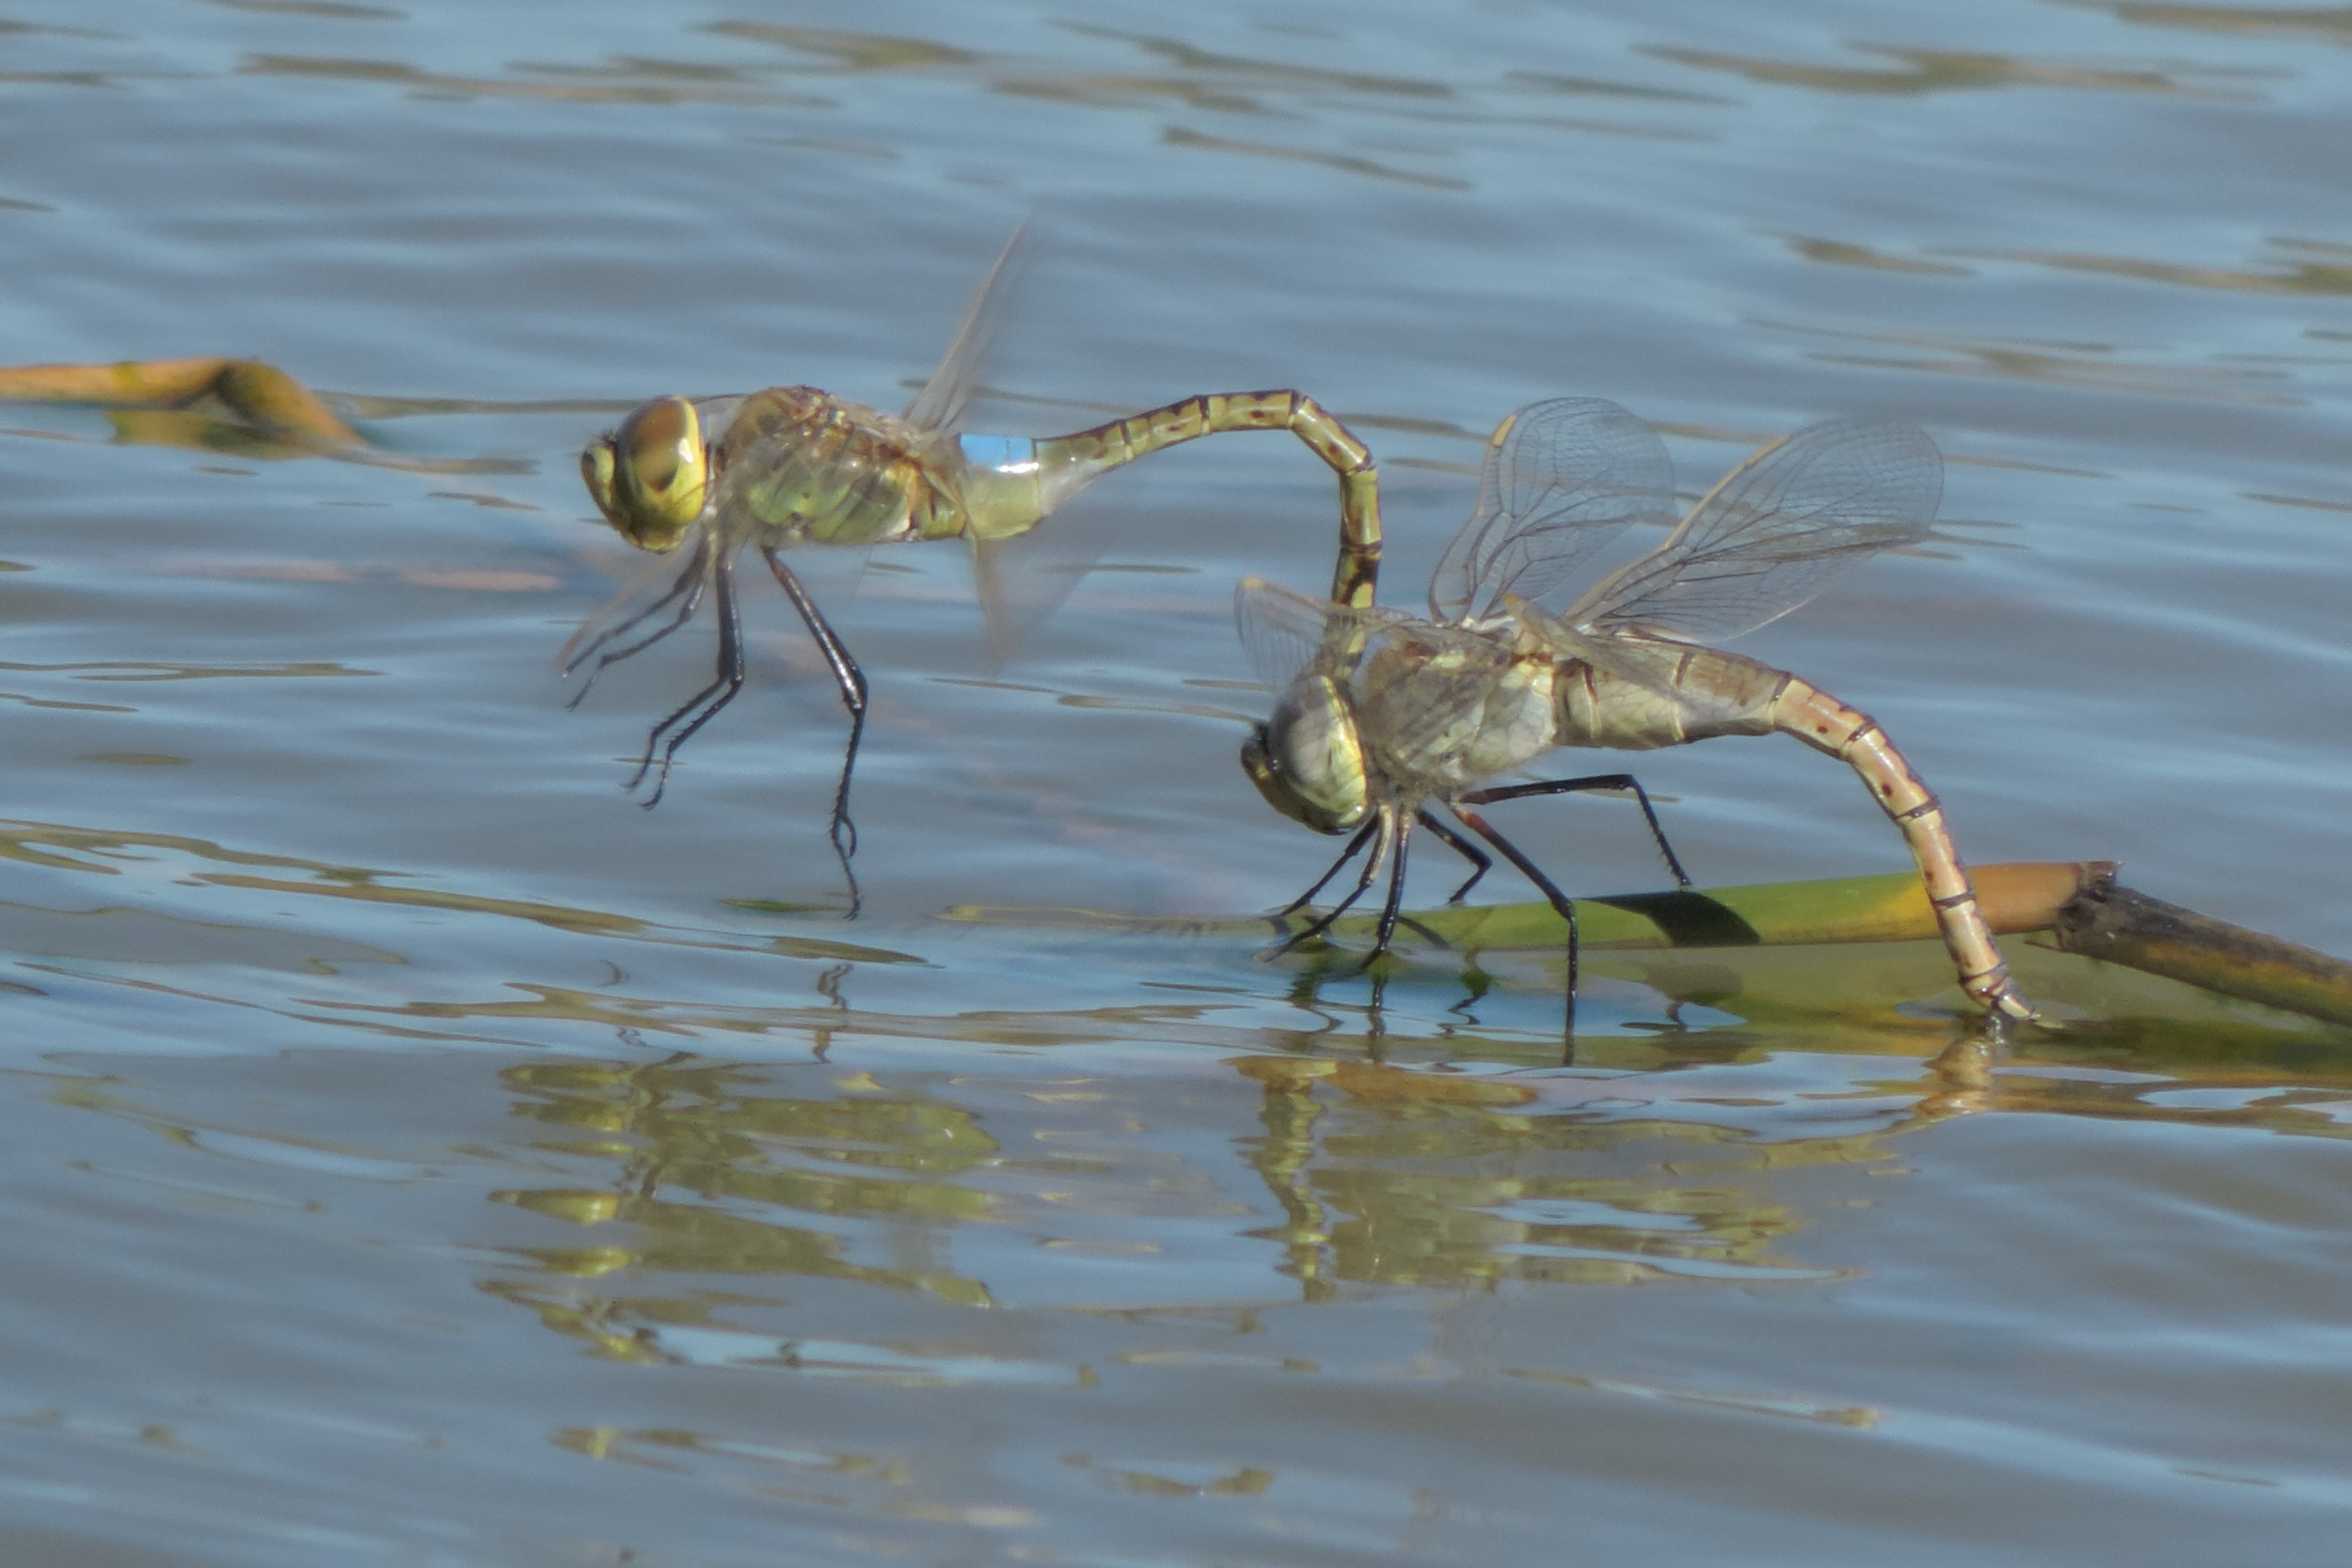 There were a lot of dragonflies around, and my wife Zainab amused herself with taking beautiful shots of them.